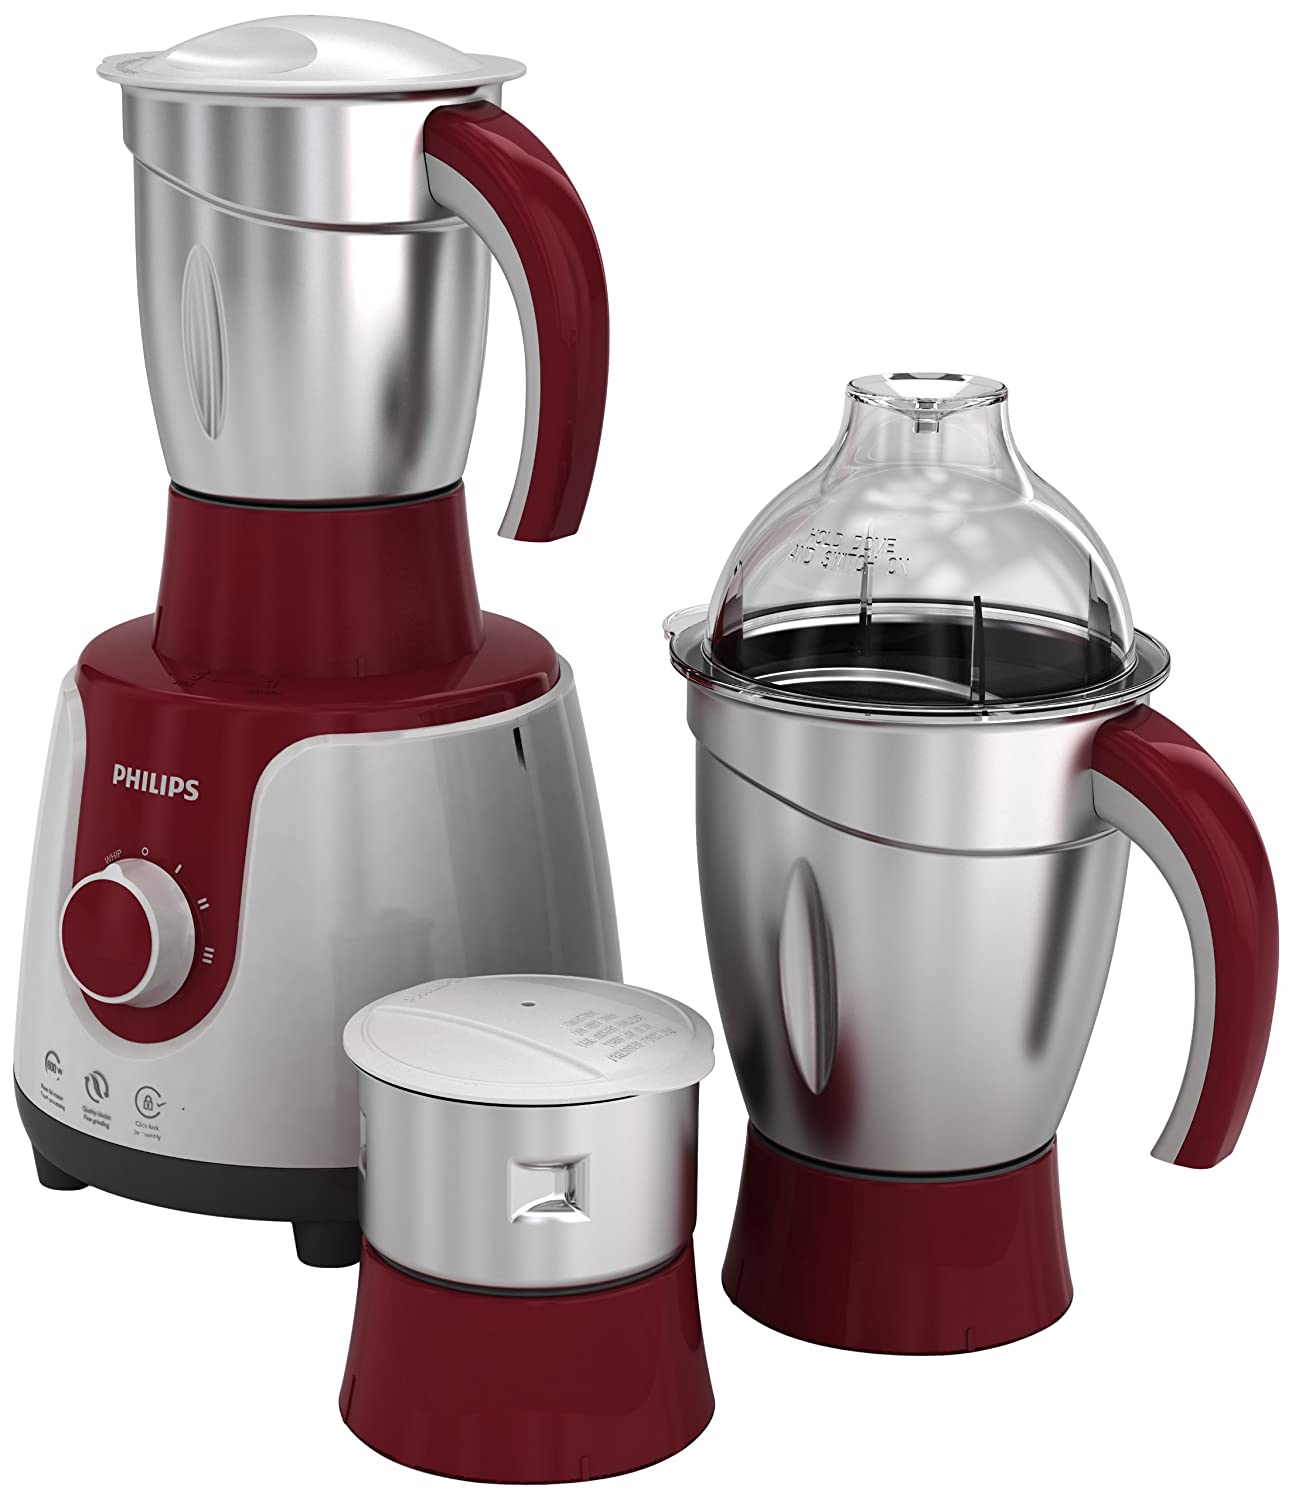 Philips HL7720 750-Watt Mixer Grinder